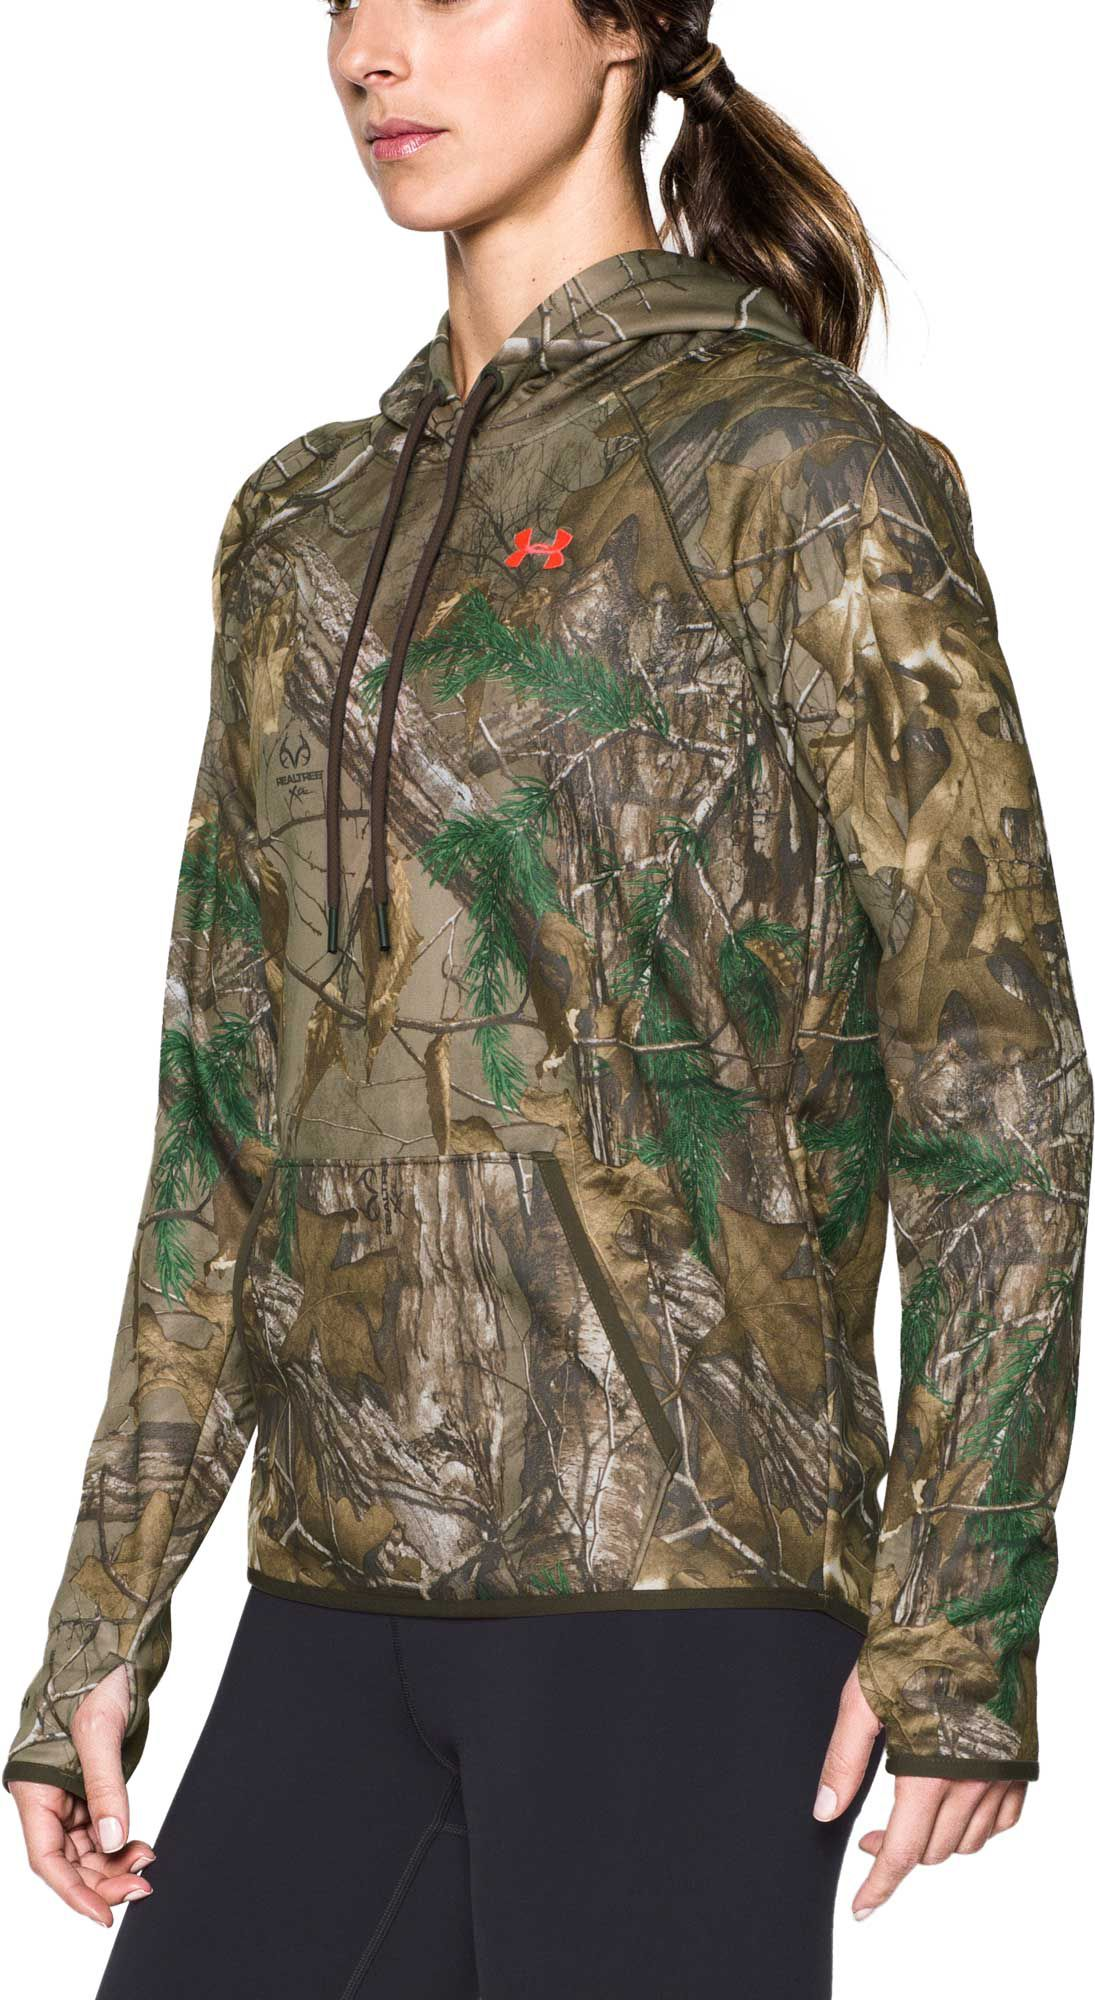 Under Armour Women's Icon Camo Hoodie, Size: Large, Green thumbnail